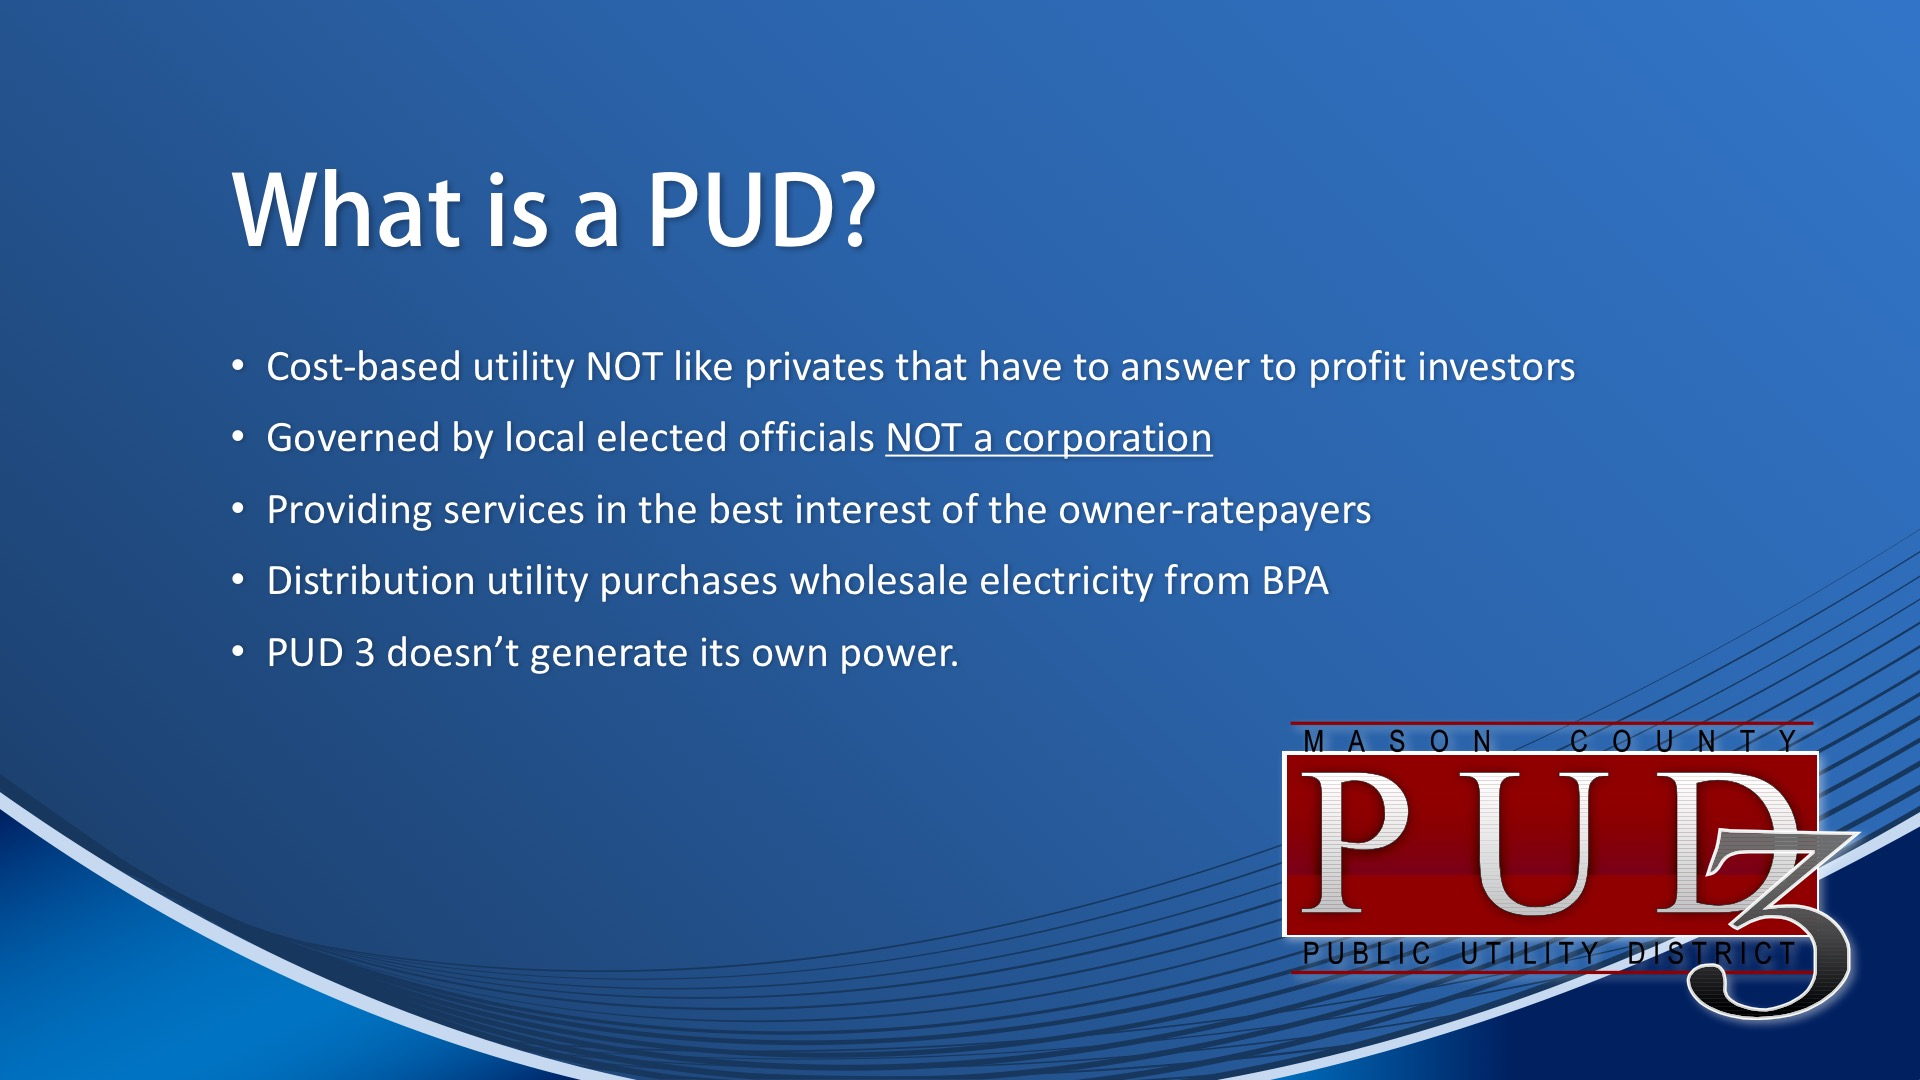 What is a PUD?